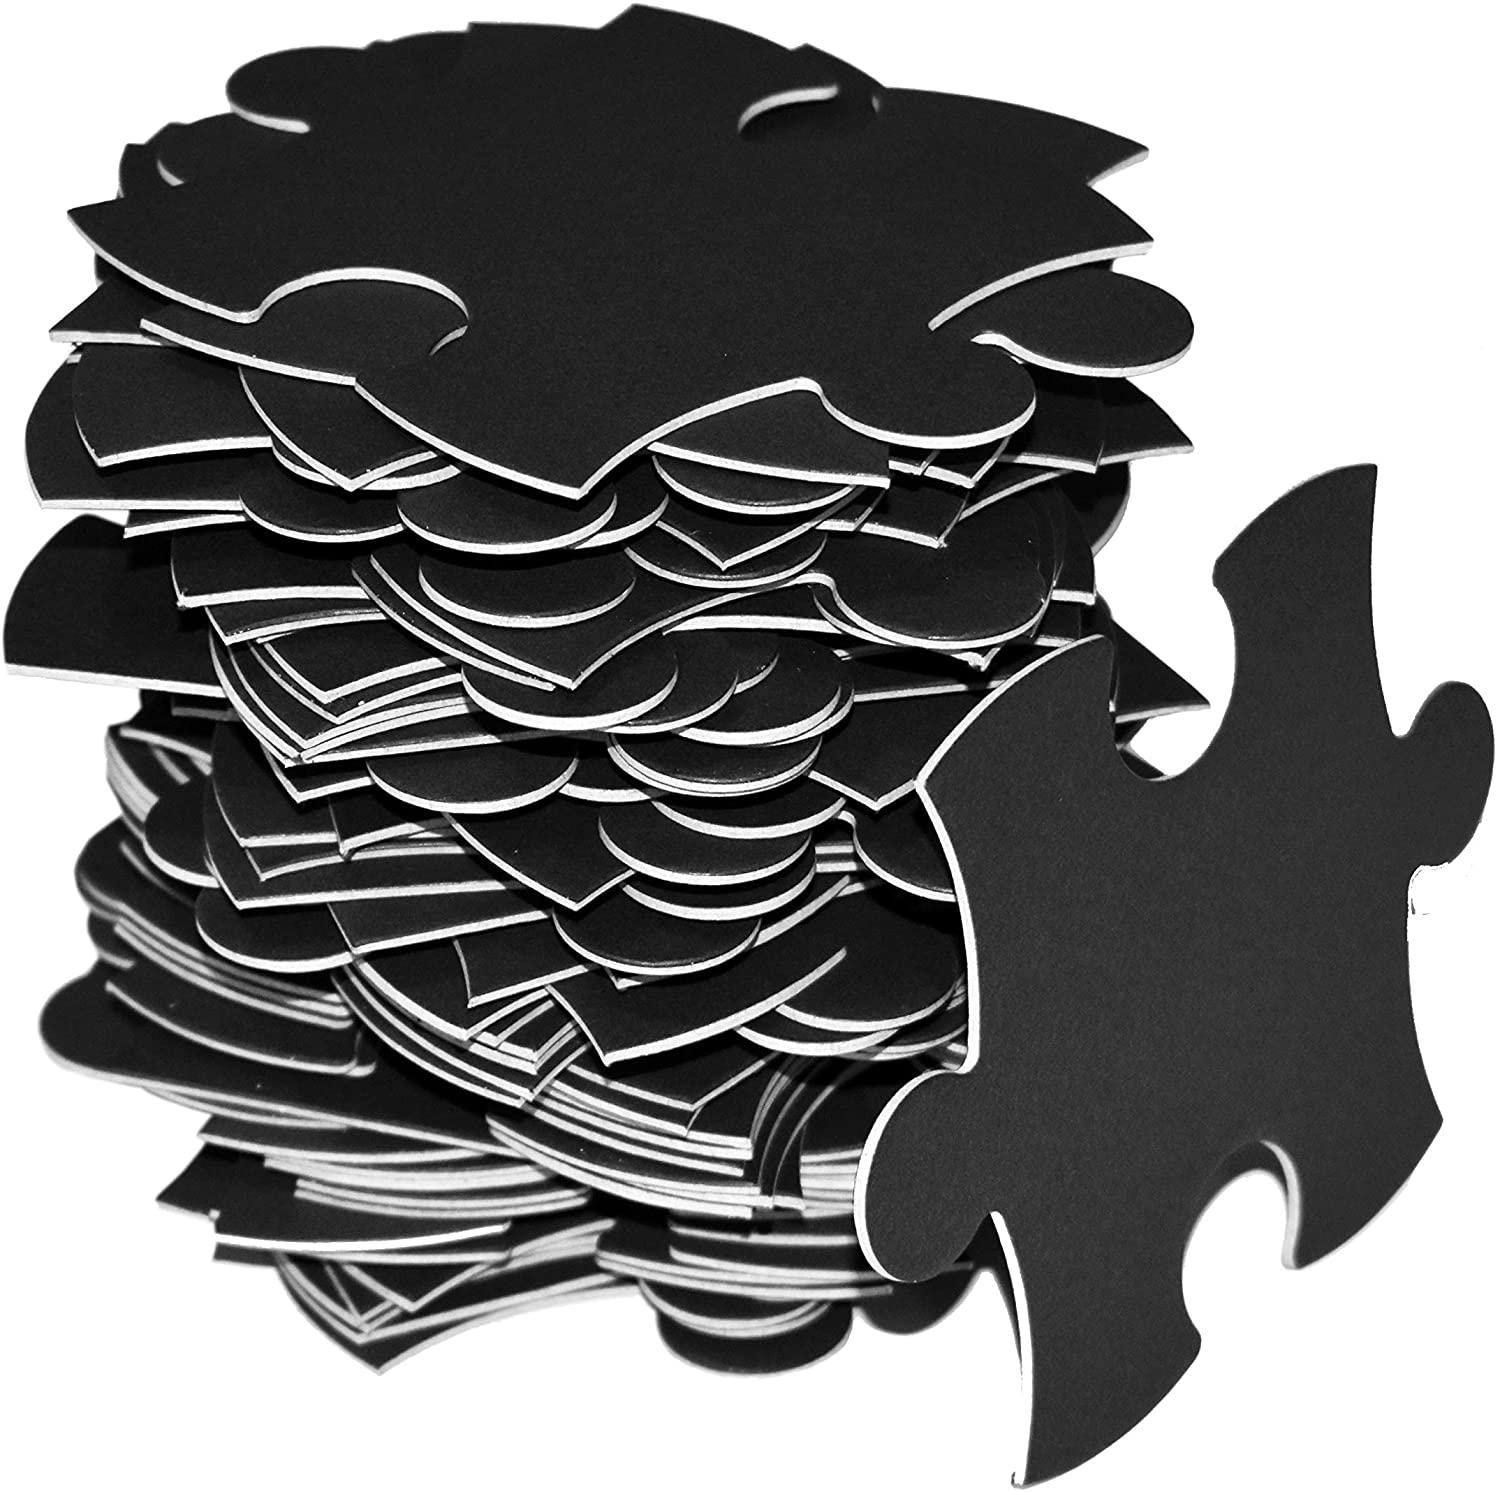 Blank Puzzle Black, 23x33 inches, 70 Large Numbered Black Puzzle Pieces, Piece Size 3.5x3.5 inches